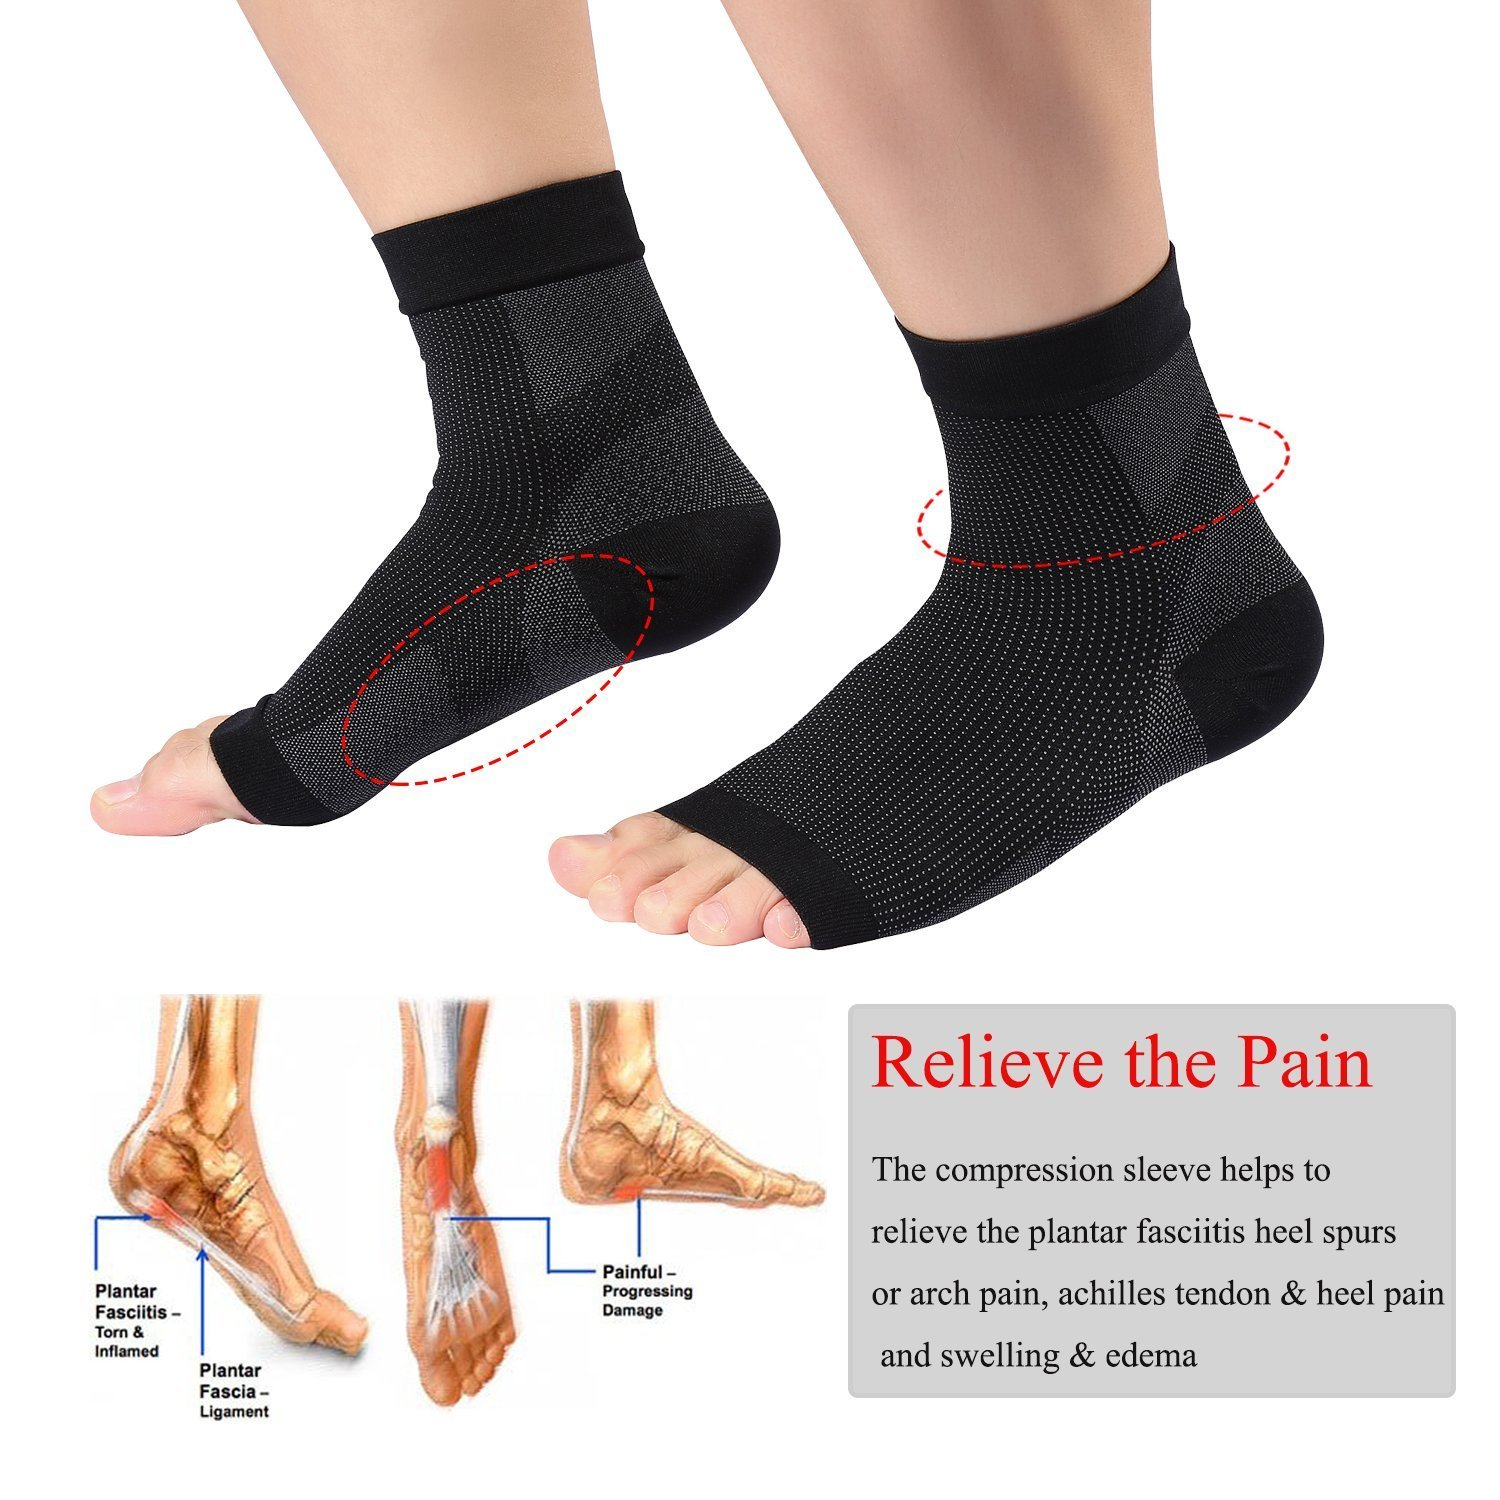 Plantar Fasciitis Compression Socks, Foot Sleeves for Heel Pain, Ankle Pain, Swelling, Flat Feet Supoort, For Men & Women, 2 Pairs Pack size S/M